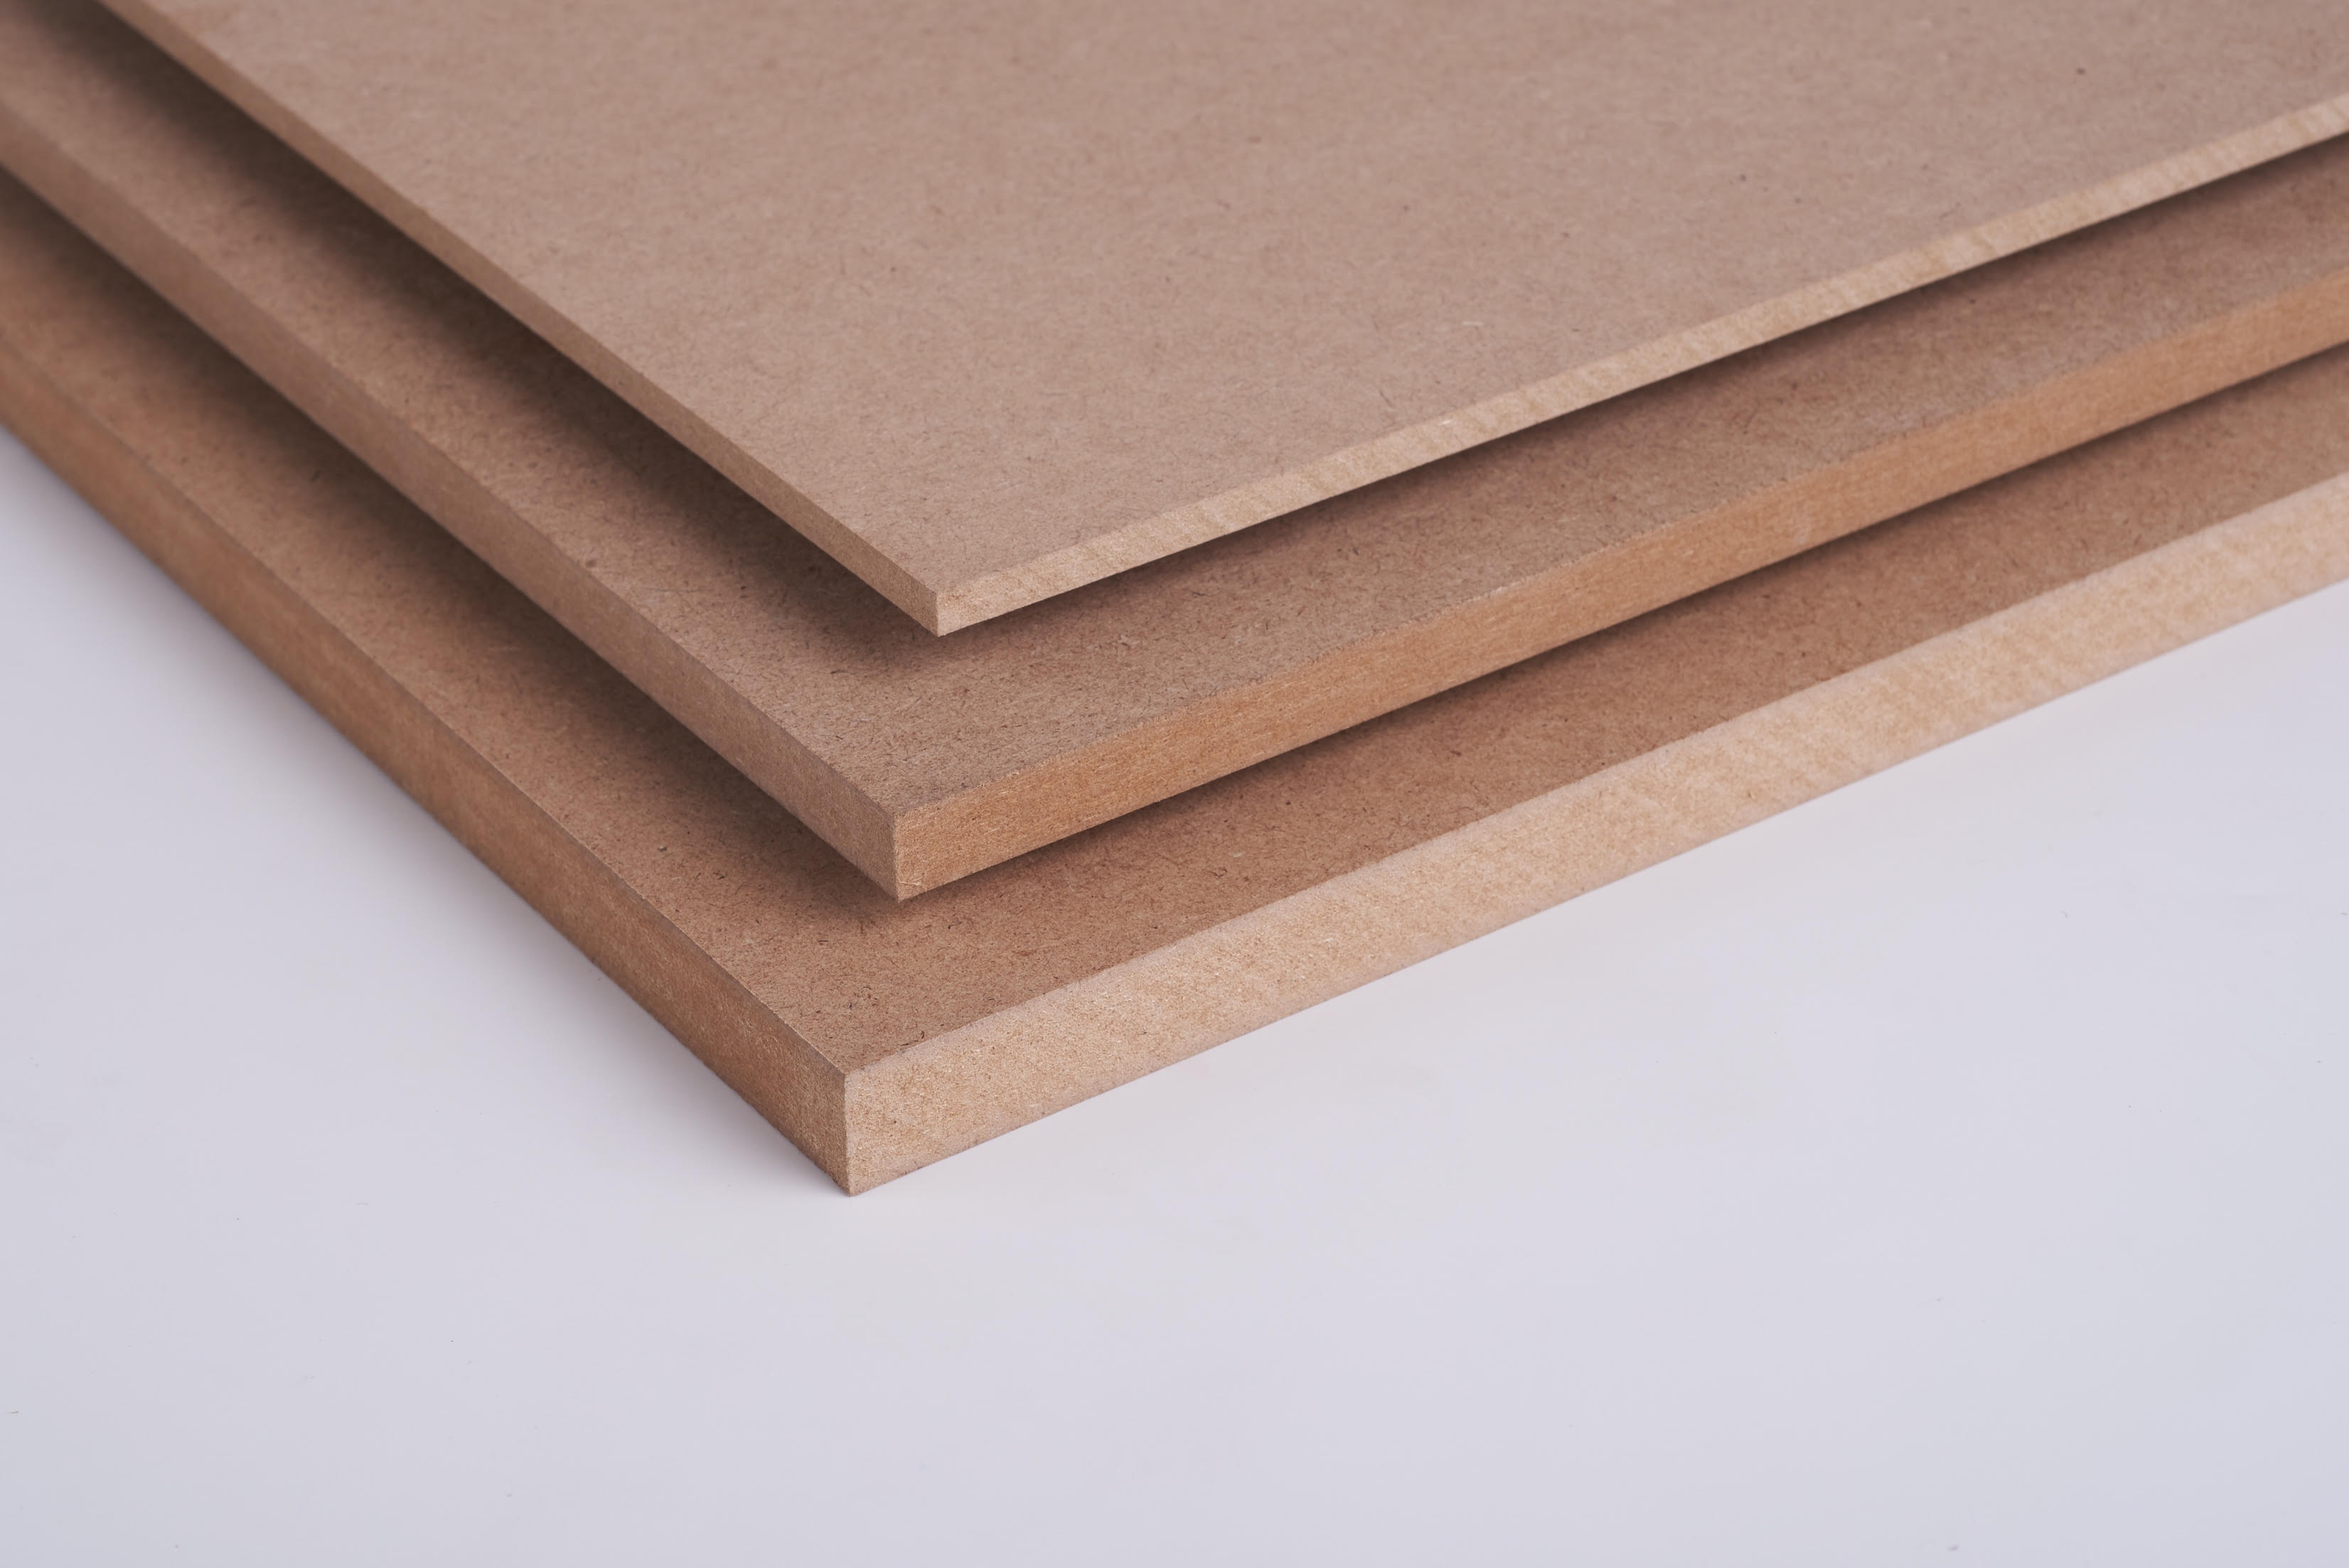 High Density Fibreboard